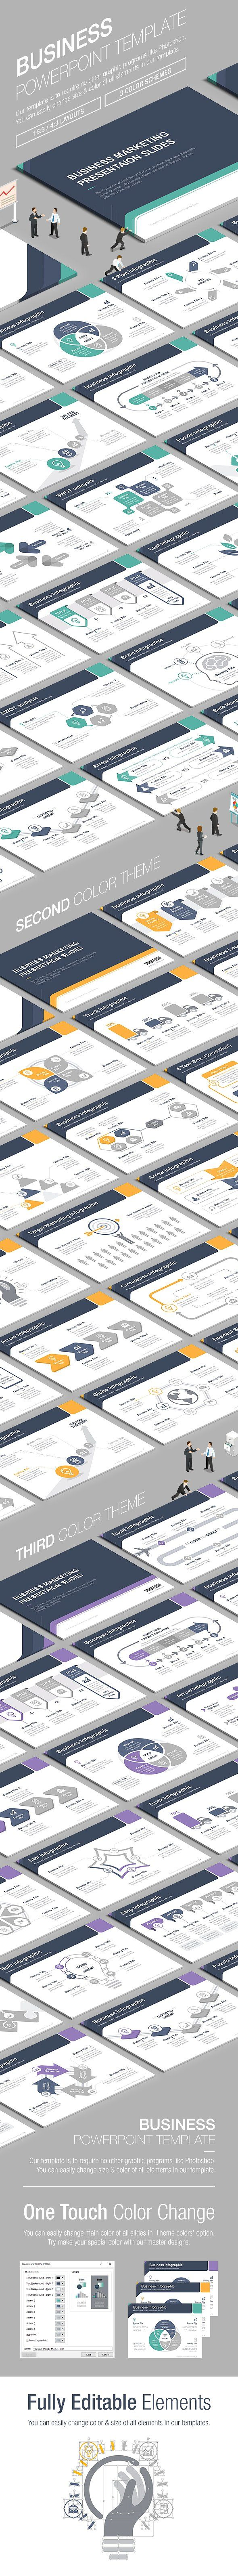 Business powerpoint template vol3 by lunik studio powerpoint business powerpoint template is to require no other graphics programs like photoshop you can easily change size am toneelgroepblik Gallery